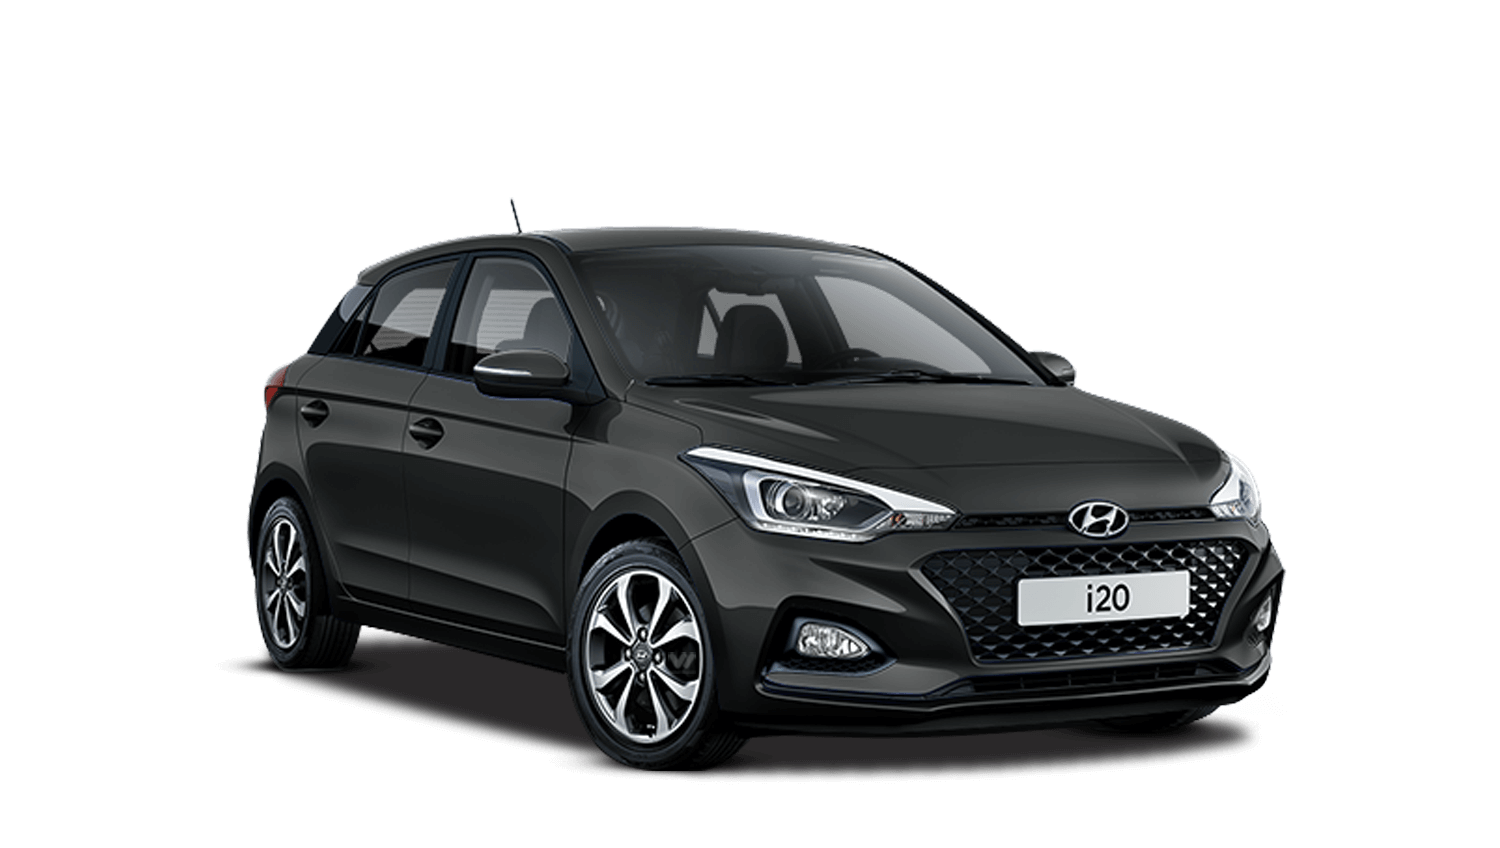 Phantom Black Hyundai i20